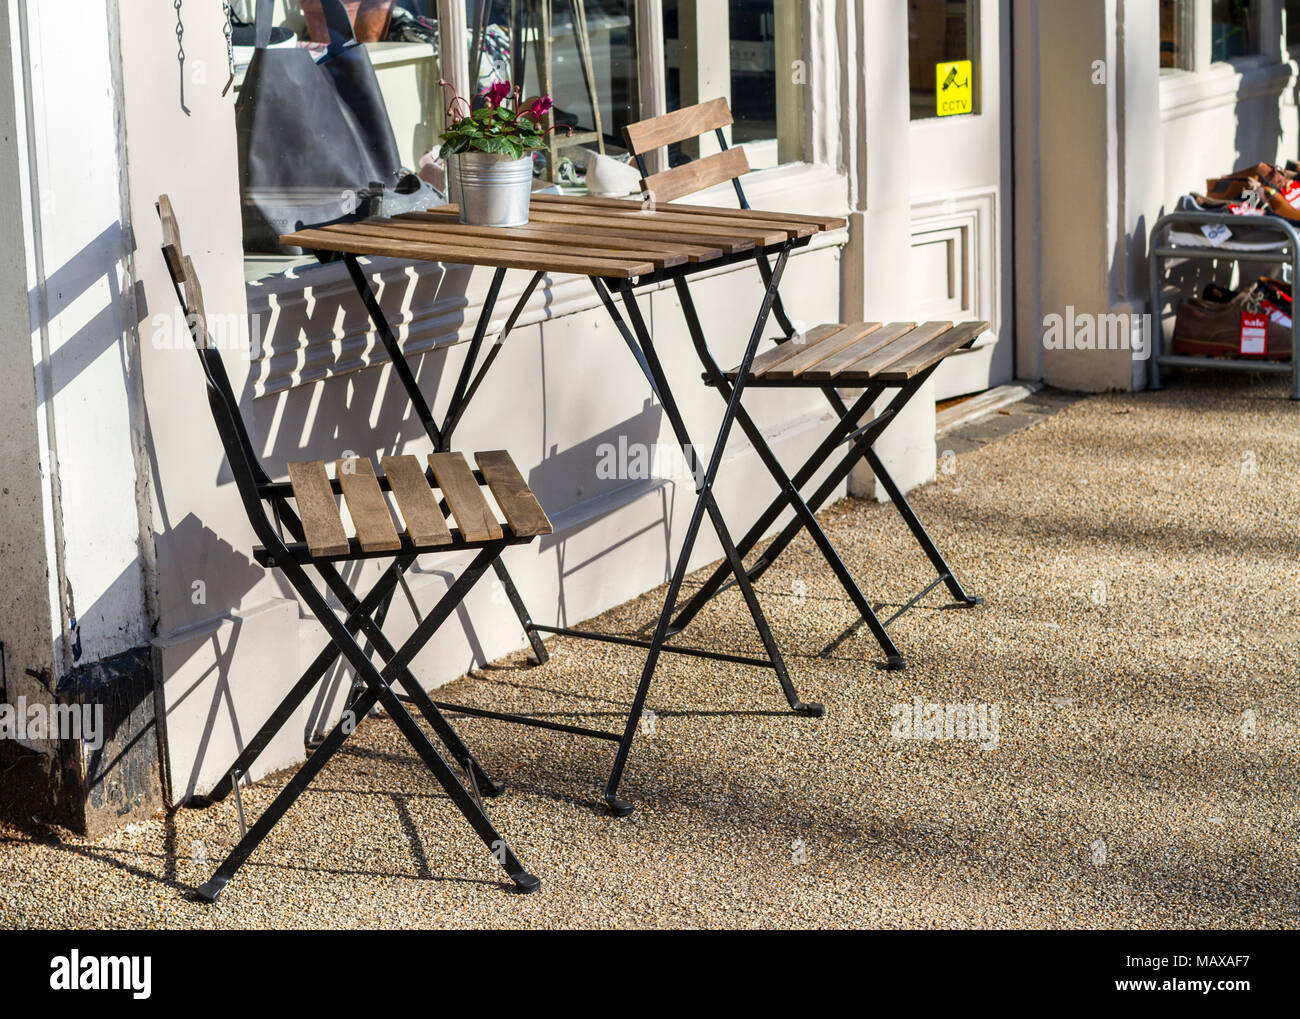 Empty Wooden Table And Chairs Outside A Coffee Shop On A